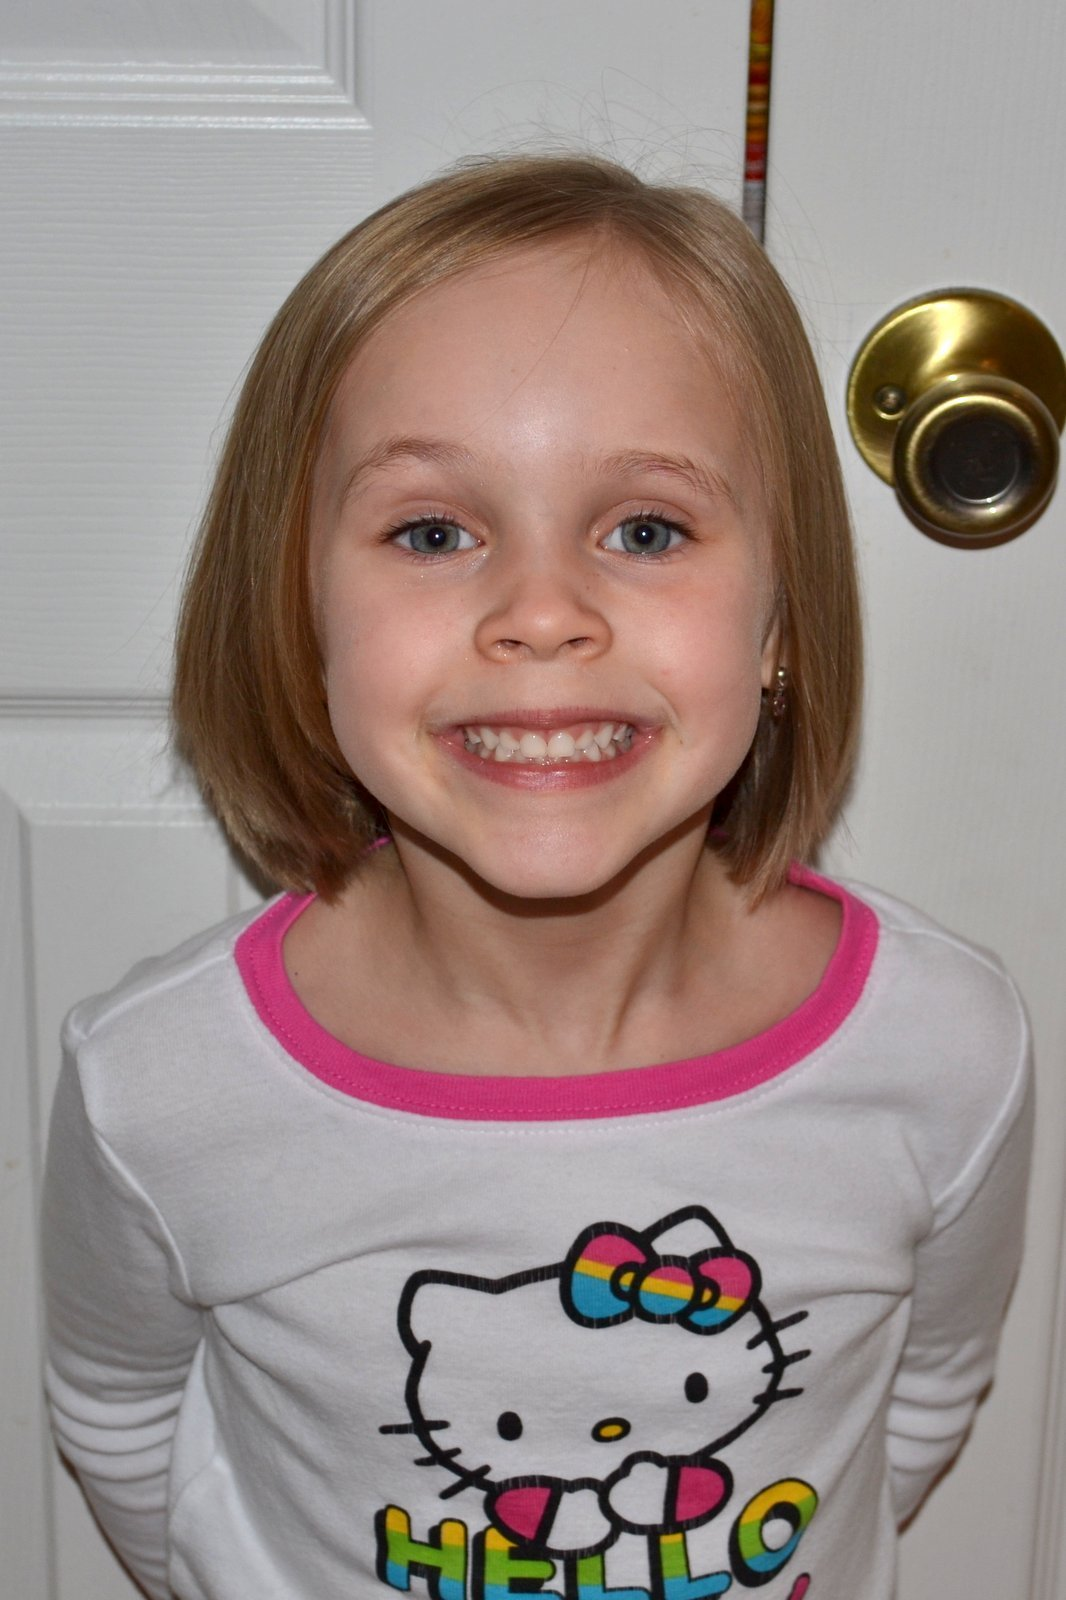 New 20 Kids Haircuts Pictures Learn Haircuts Ideas With Pictures